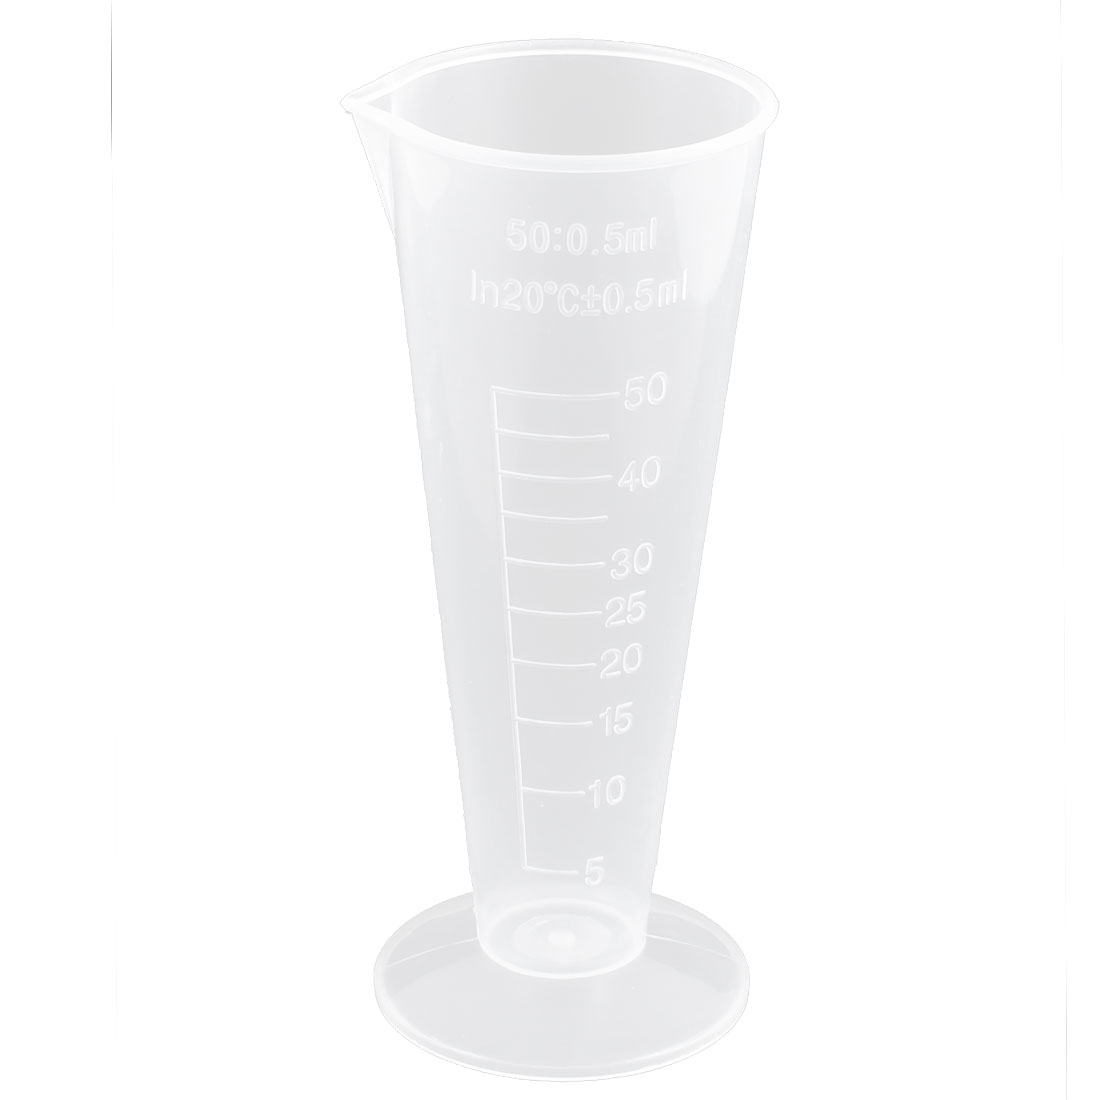 Laboratory Clear Plastic Conical Graduated Beaker Measuring Cups 5pcs